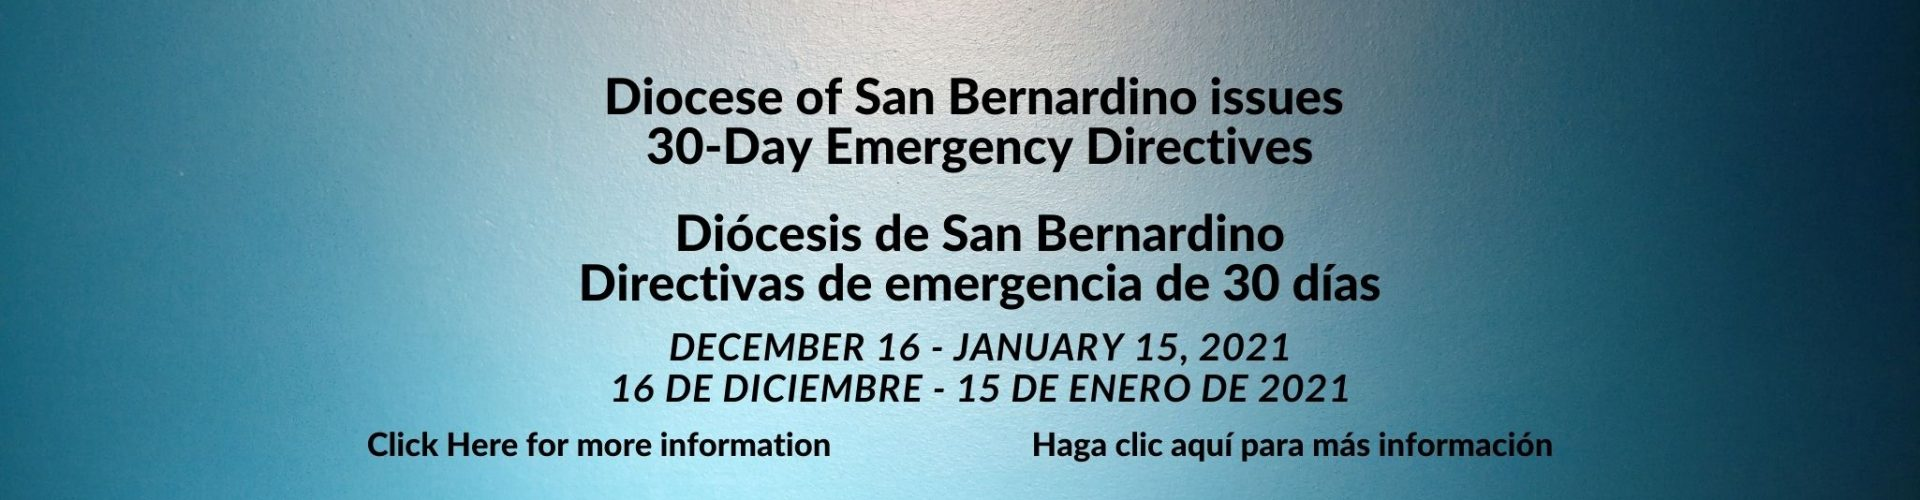 30-Day Emergency Directives